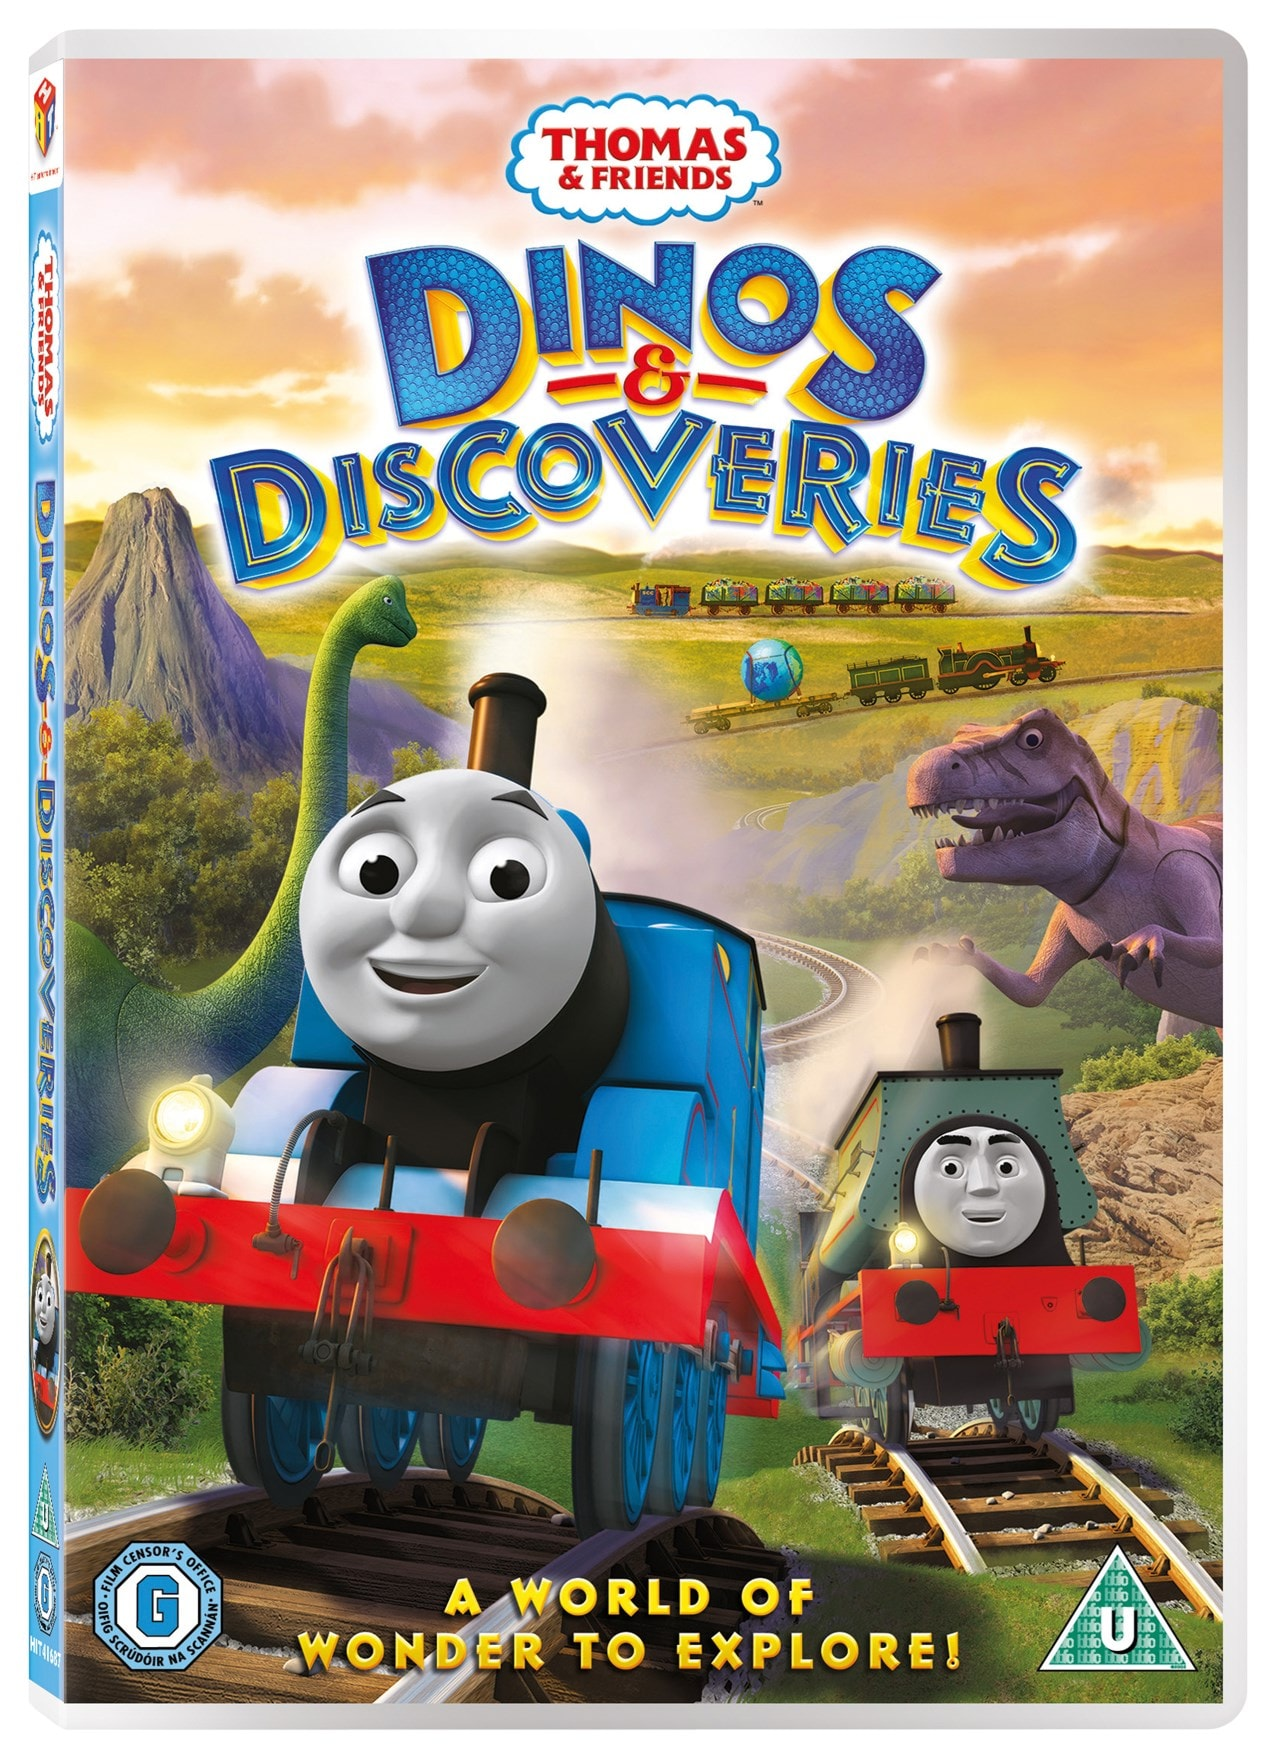 Thomas & Friends: Dinos and Discoveries - 2